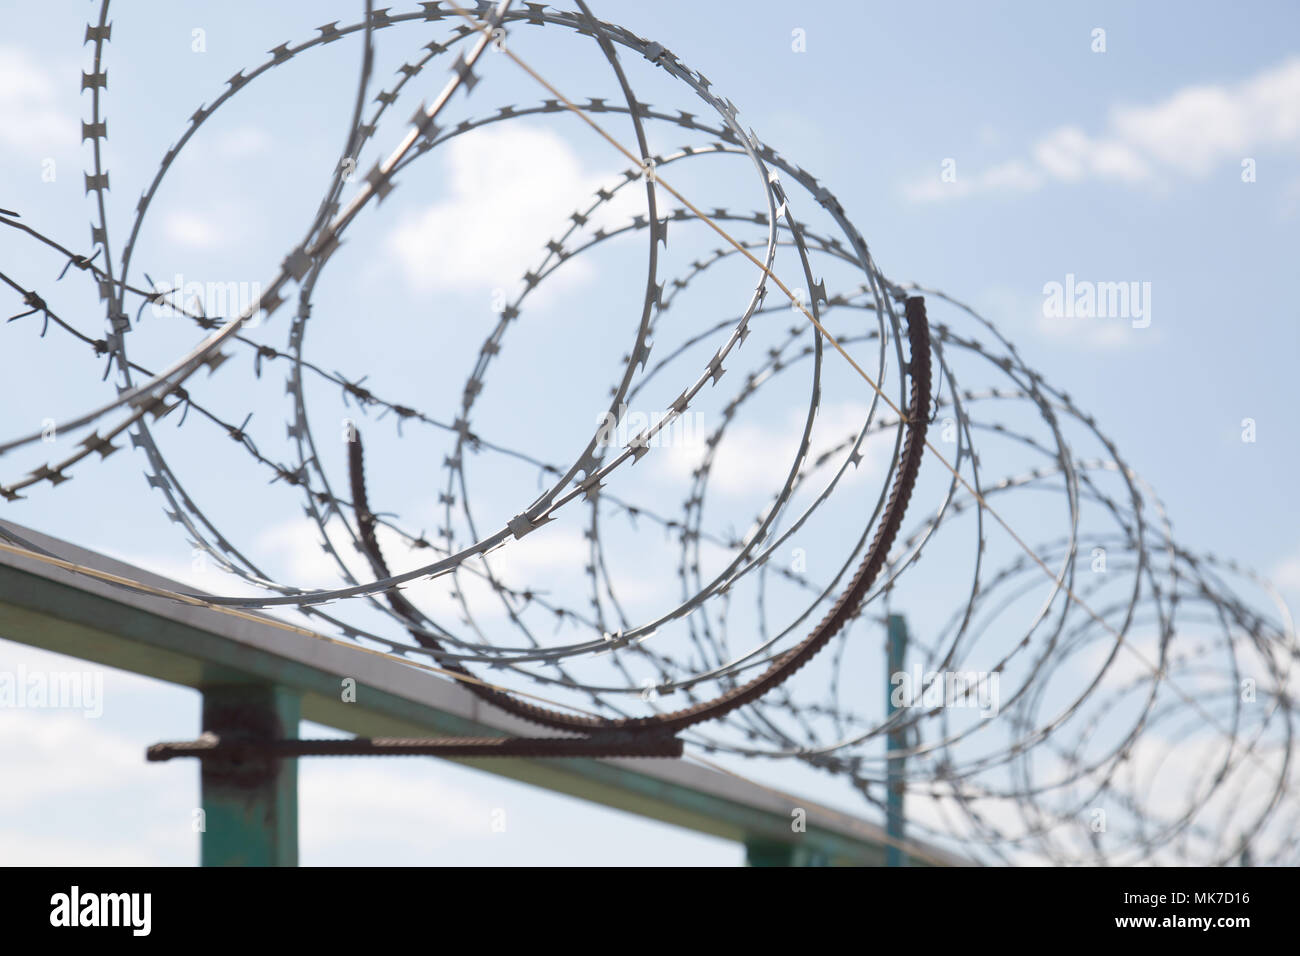 Fence with razor barbed wire protection against blue sky background. Dictatorship and tyranny concept. - Stock Image